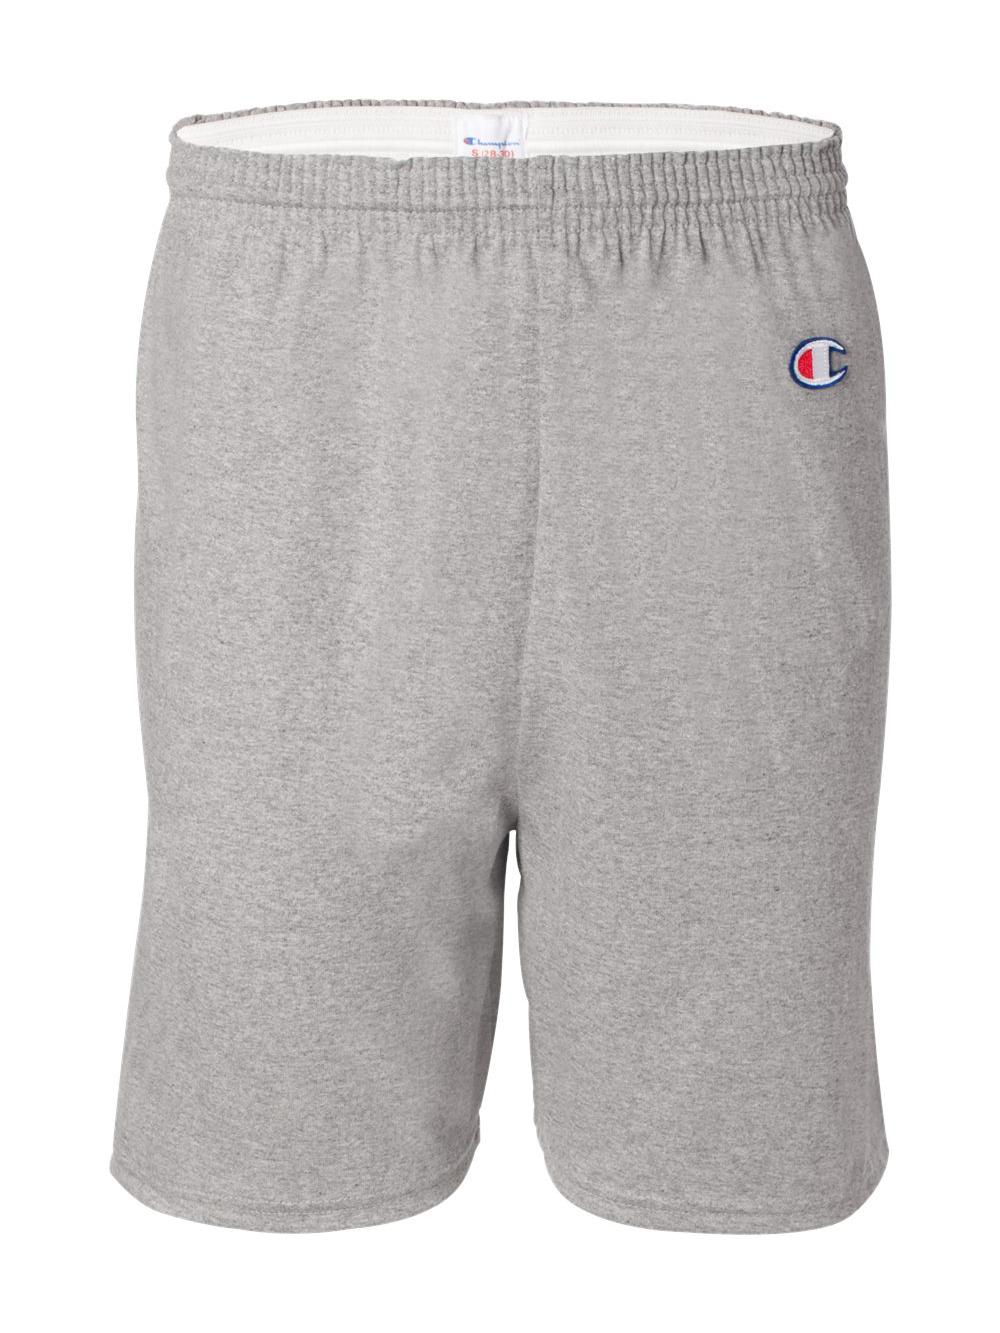 Champion-Cotton-Gym-Shorts-8187 thumbnail 9